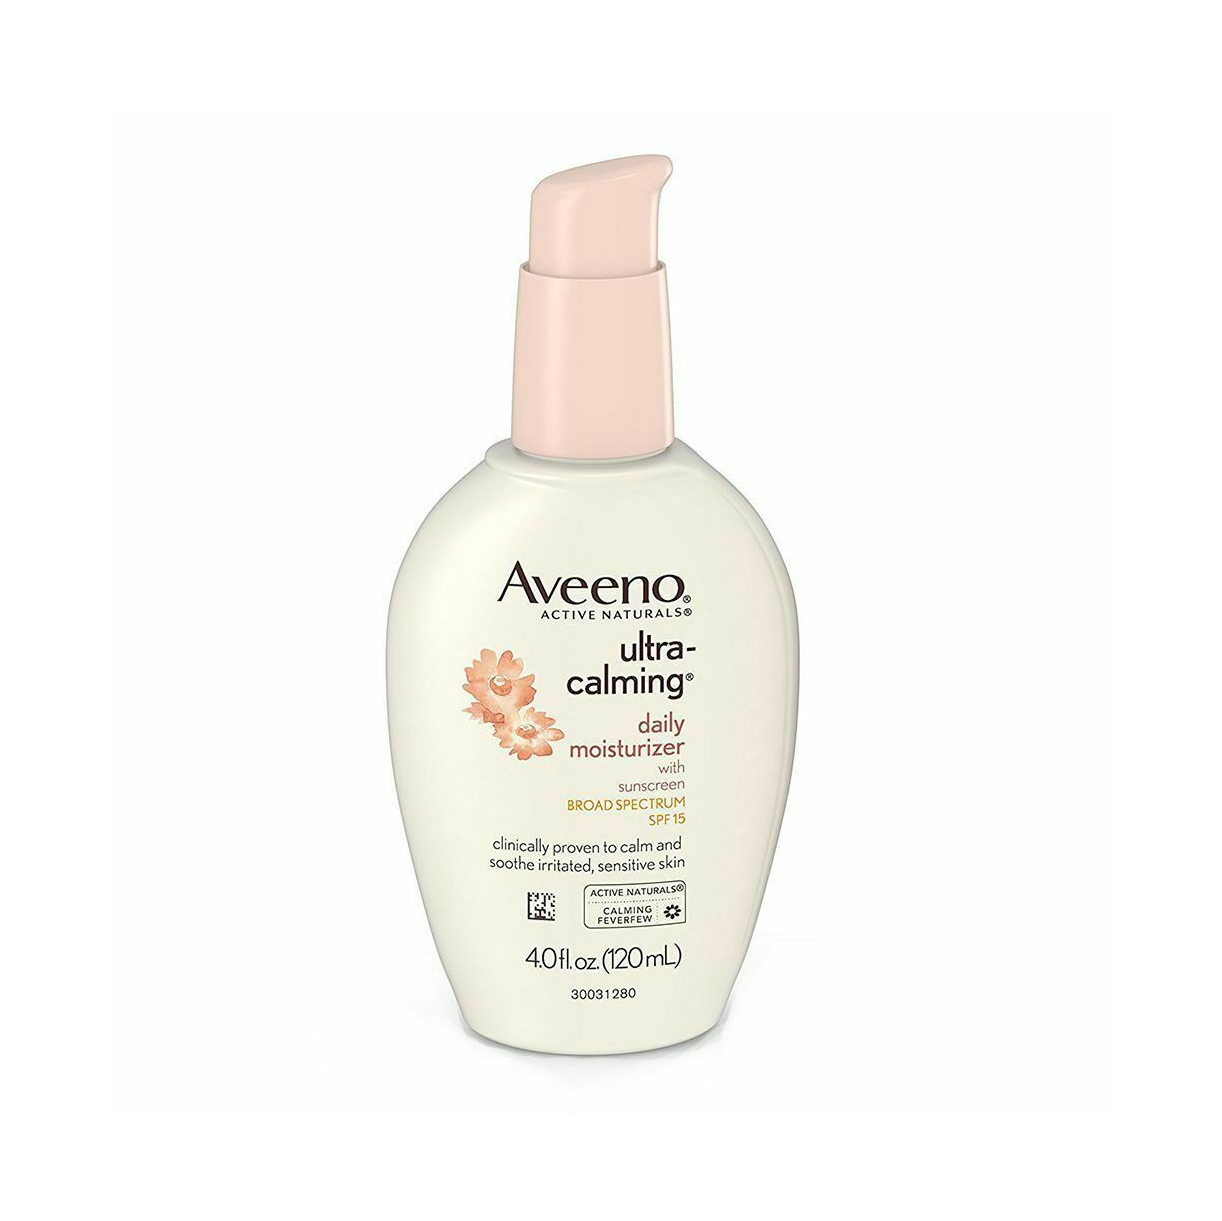 Best Moisturizer for Sensitive Skin: Aveeno Ultra-Calming Moisturizer SPF 15